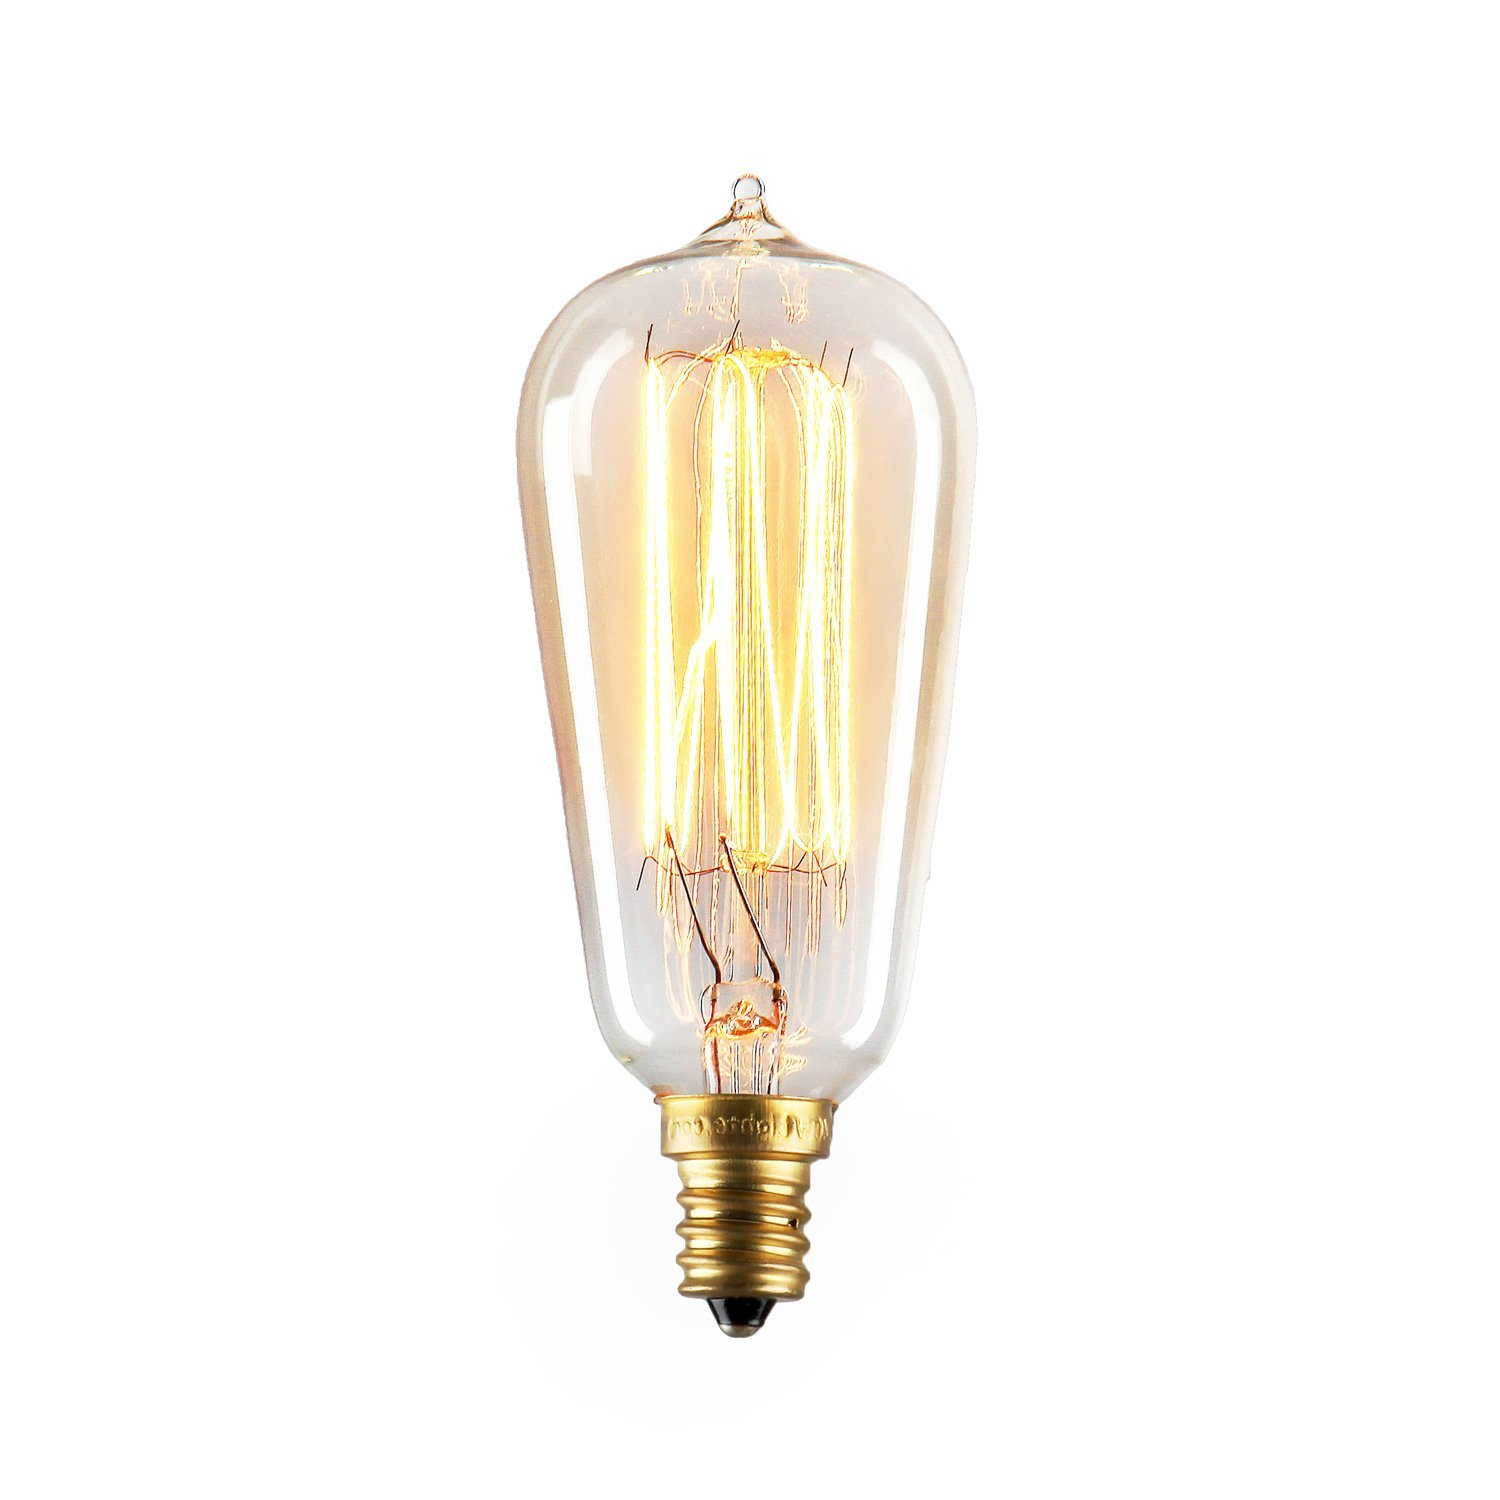 Candelabra Edison Bulbs by Brooklyn Bulb Co.   Mini Bushwick Collection, Dimmable, 40W (E12 Socket), Warm White, Squirrel Cage Filament Style   Pack of 4